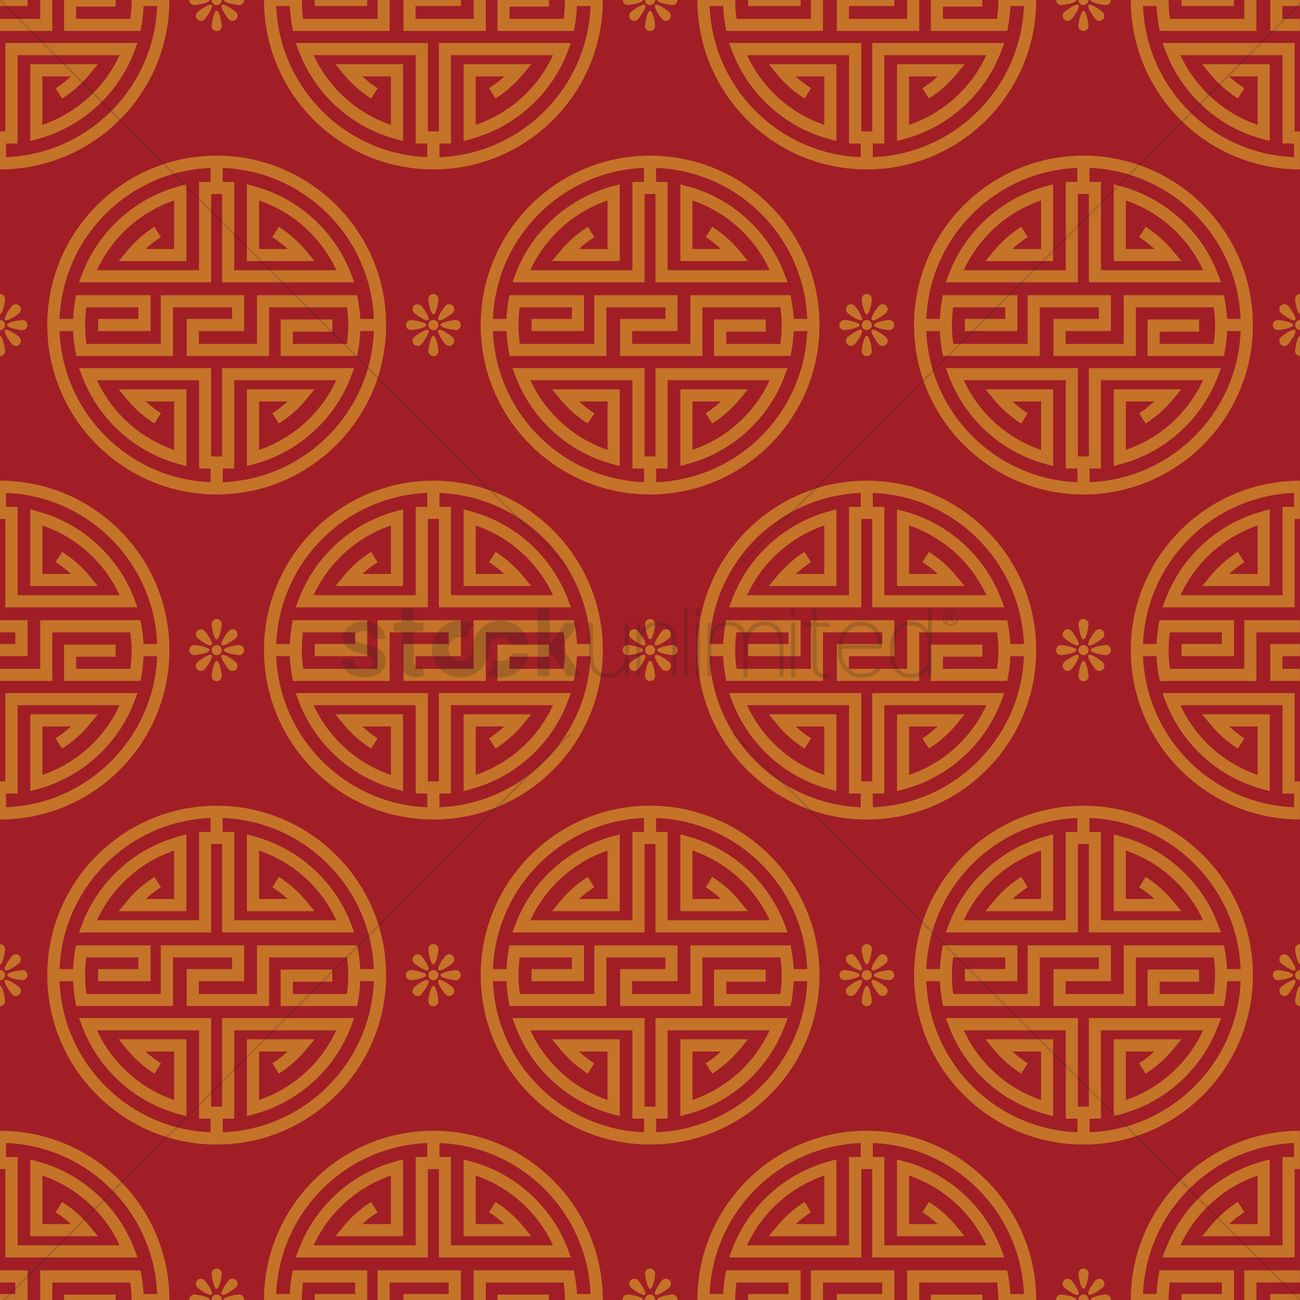 Chinese Web Design Patterns